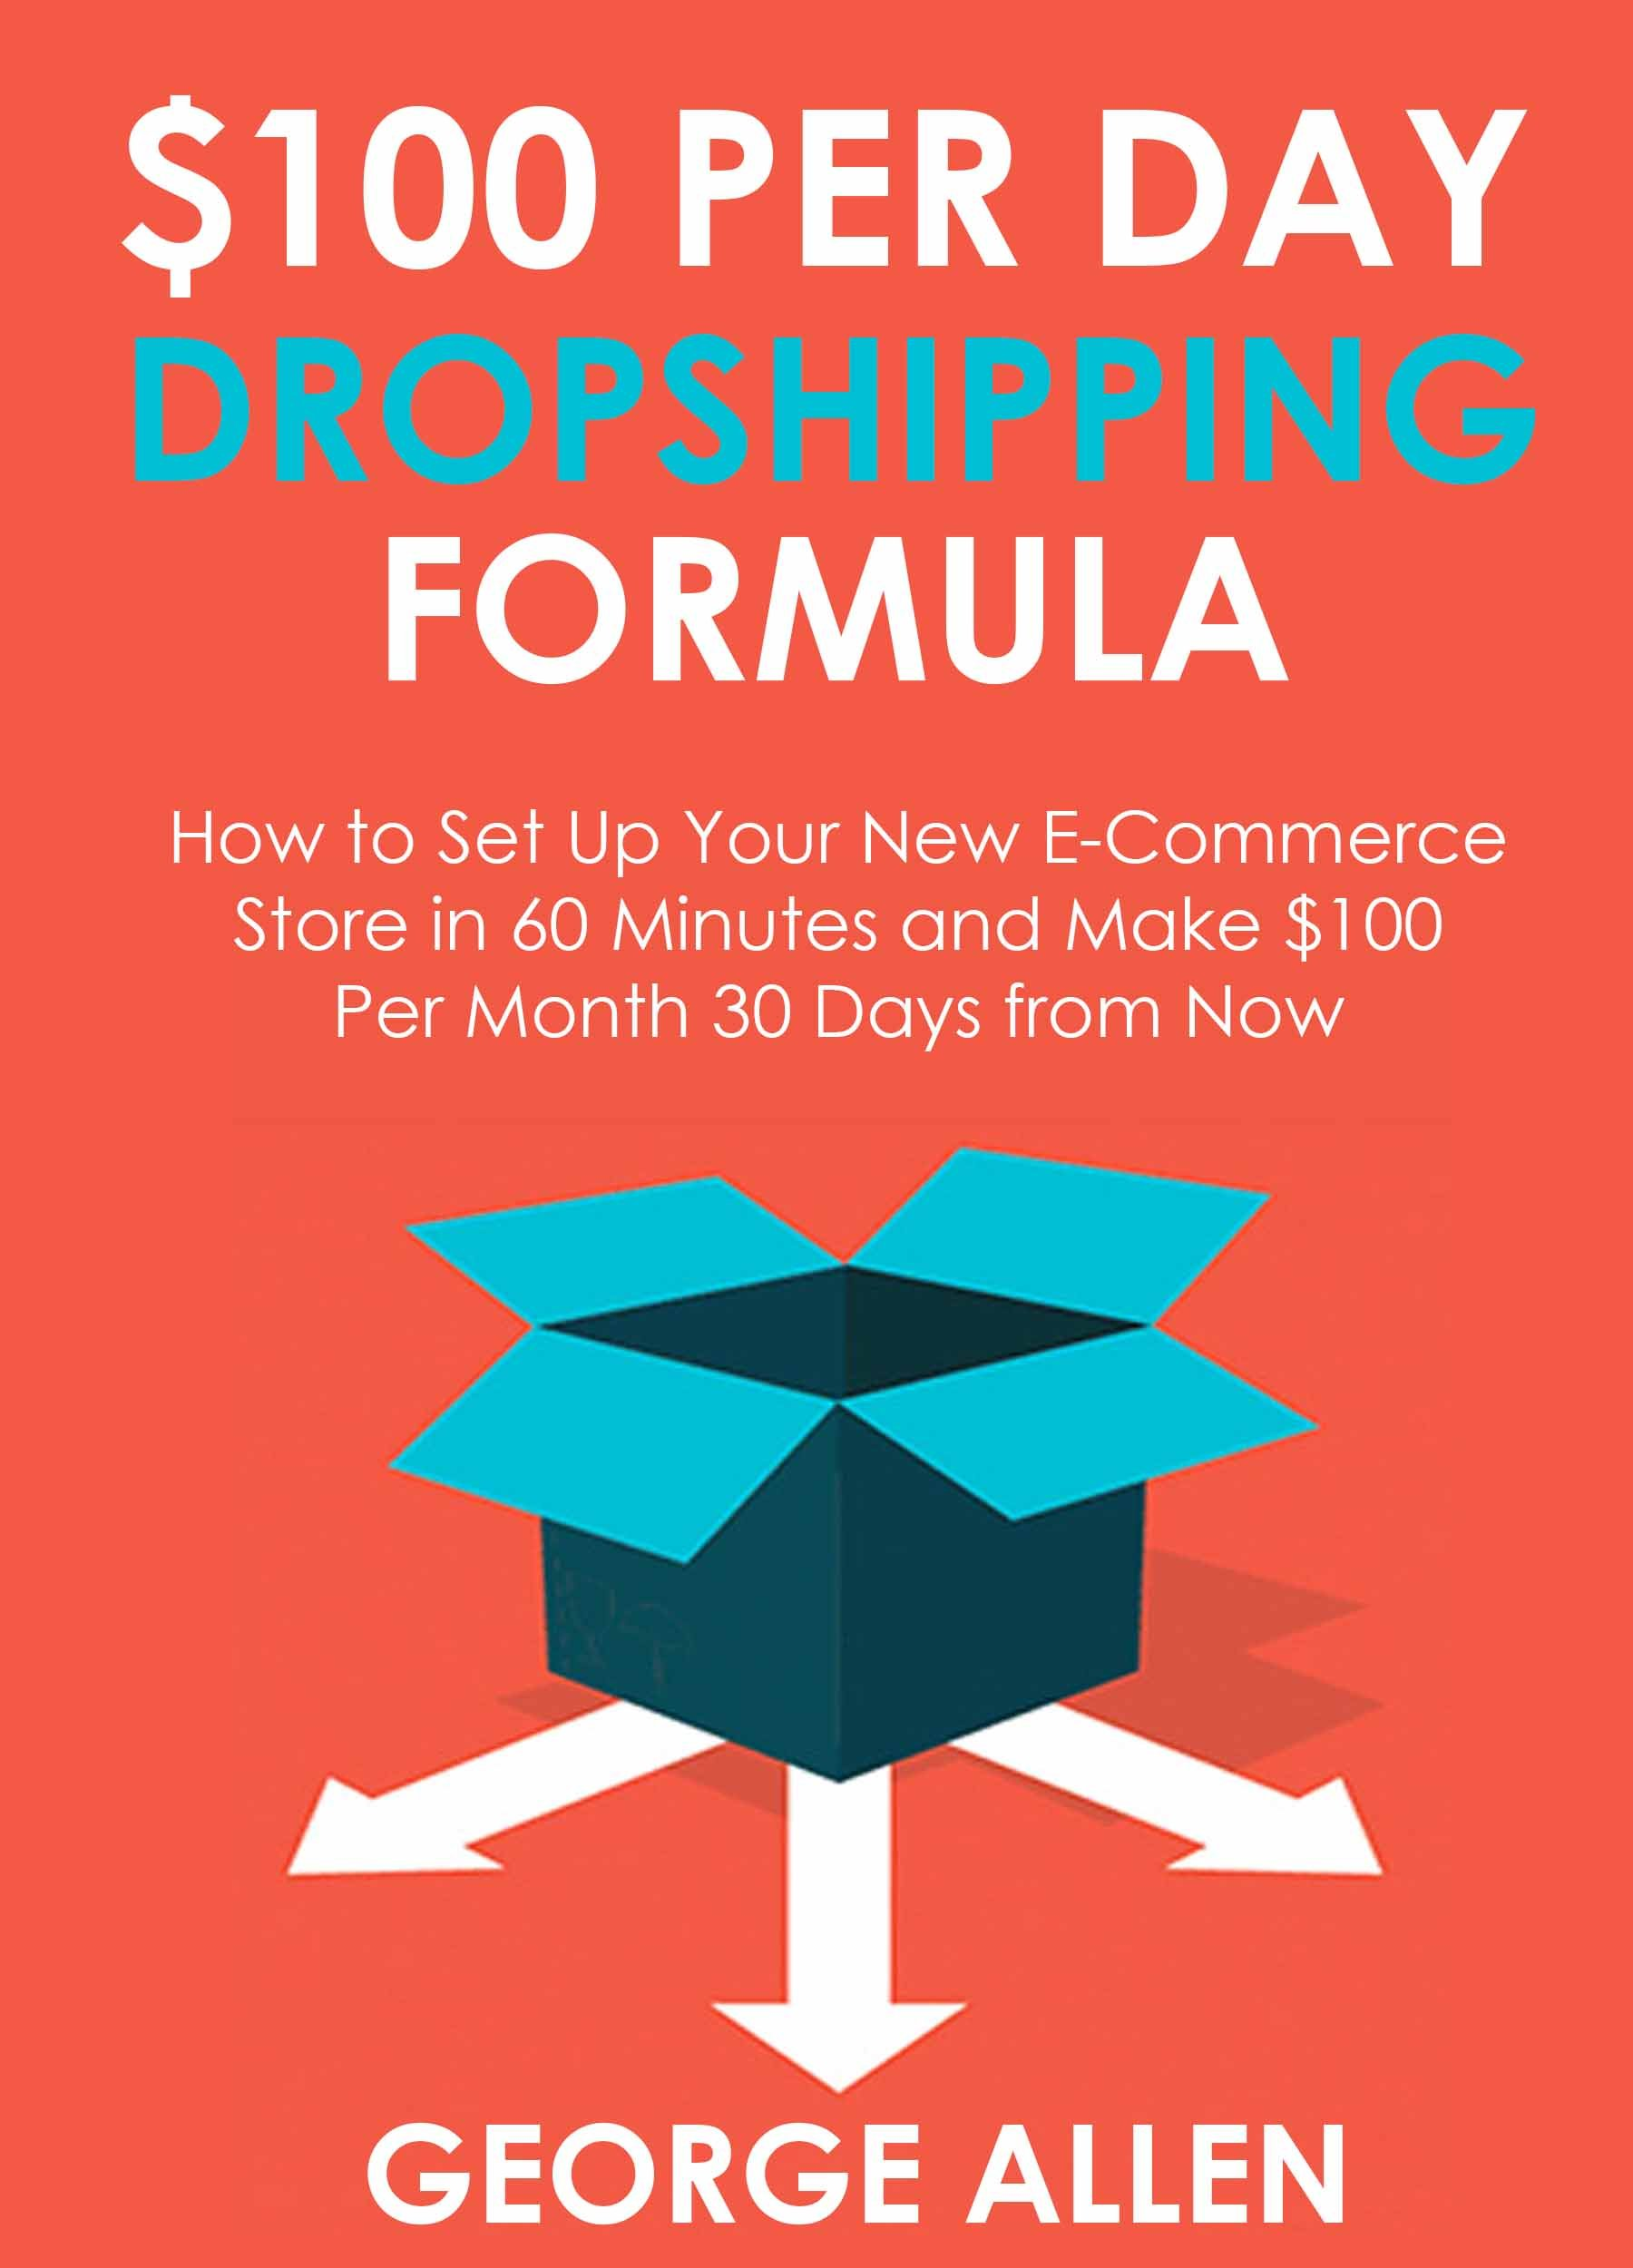 $100 PER DAY DROPSHIPPING FORMULA: How to Set Up Your New E-Commerce Store in 60 Minutes and Make $100 per Month 30 Days from Now